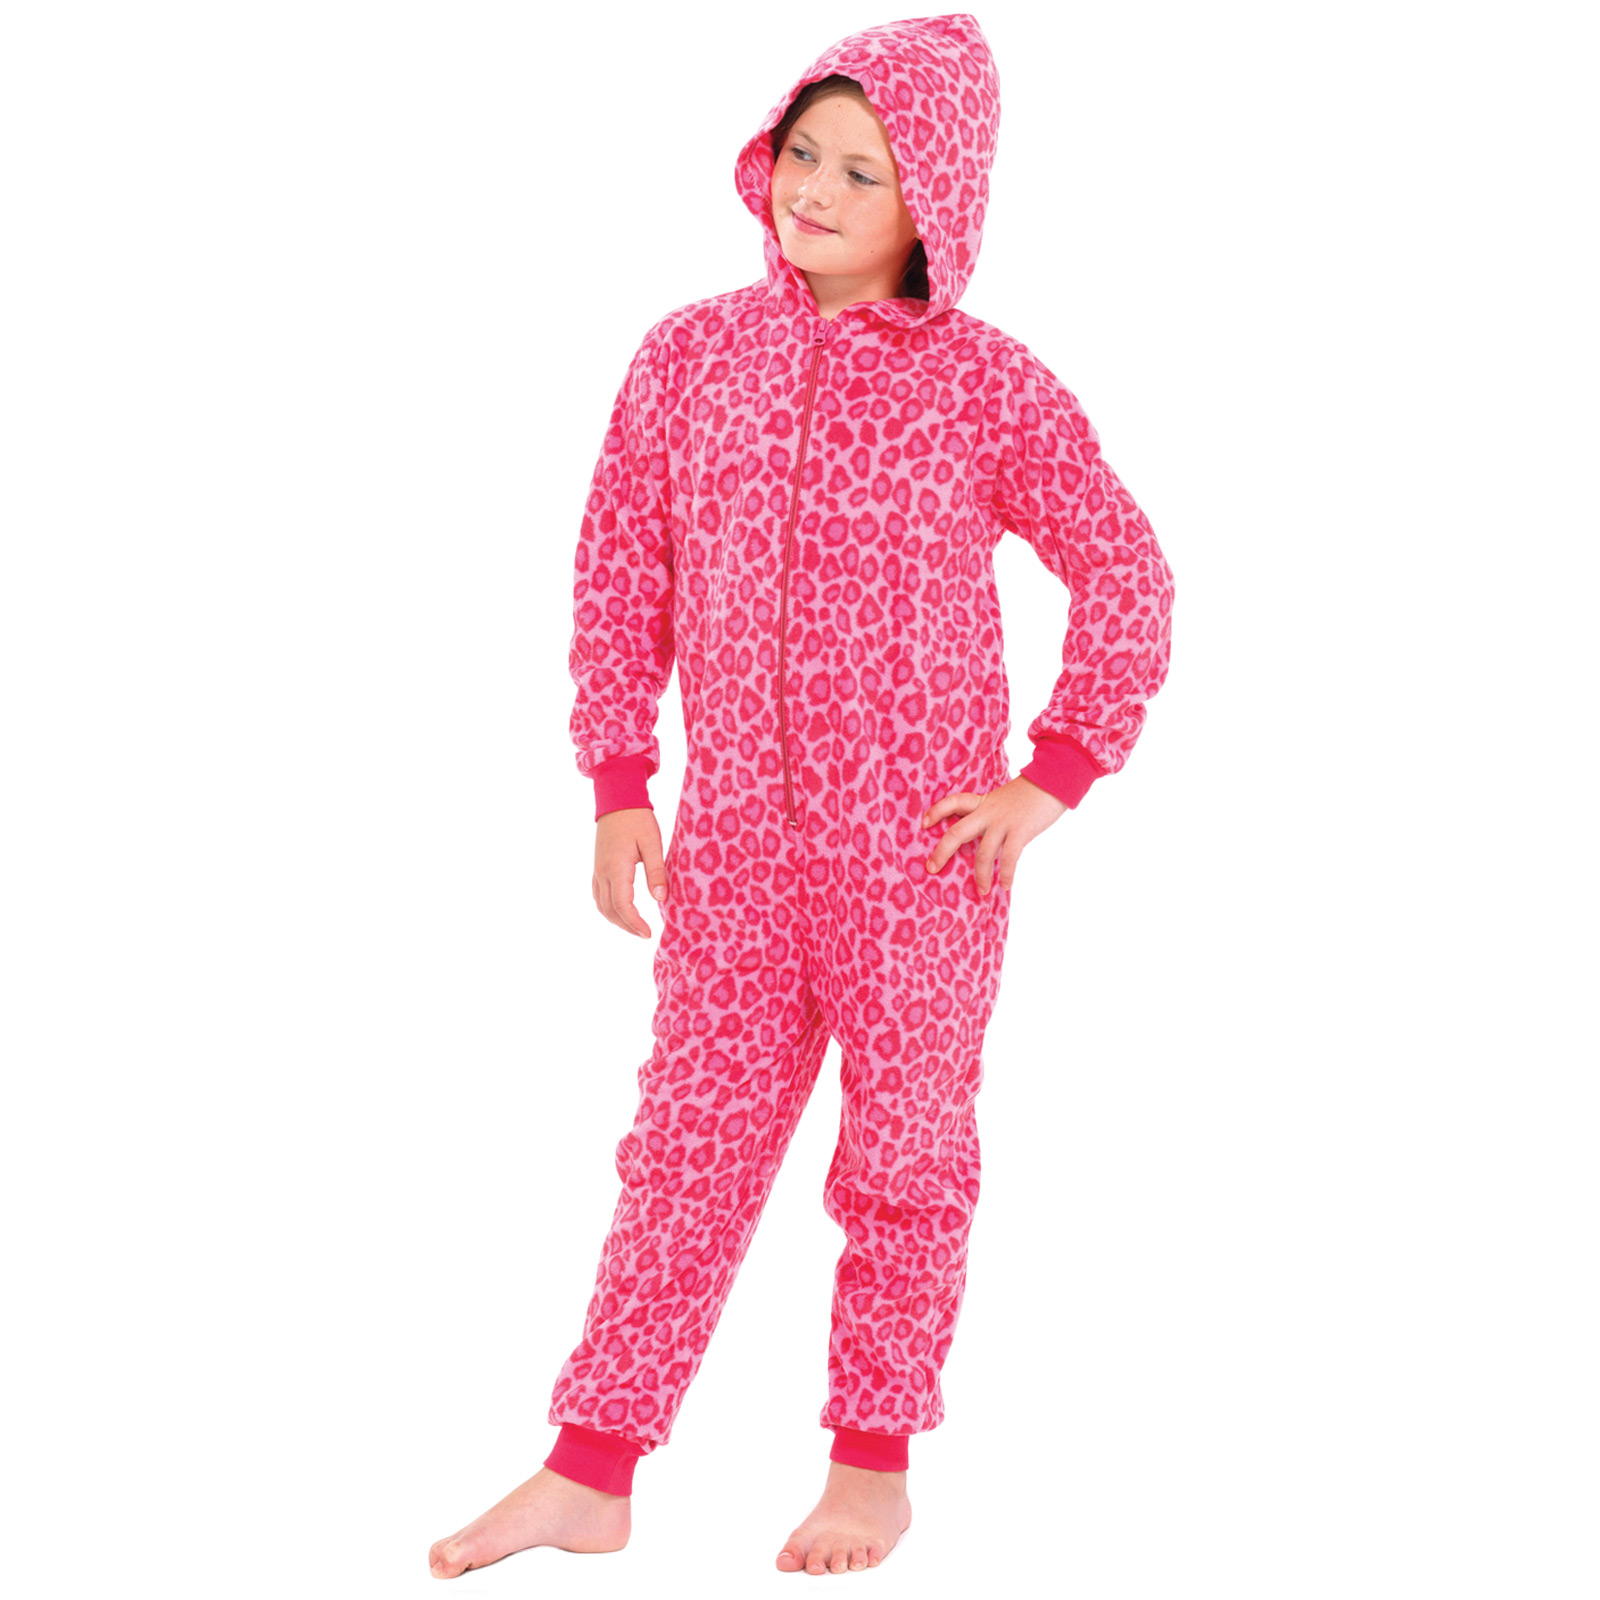 Chic and trendy bedtime apparel like these pajamas for girls are super comfortable and only available from the best PLACE, The Children's Place!